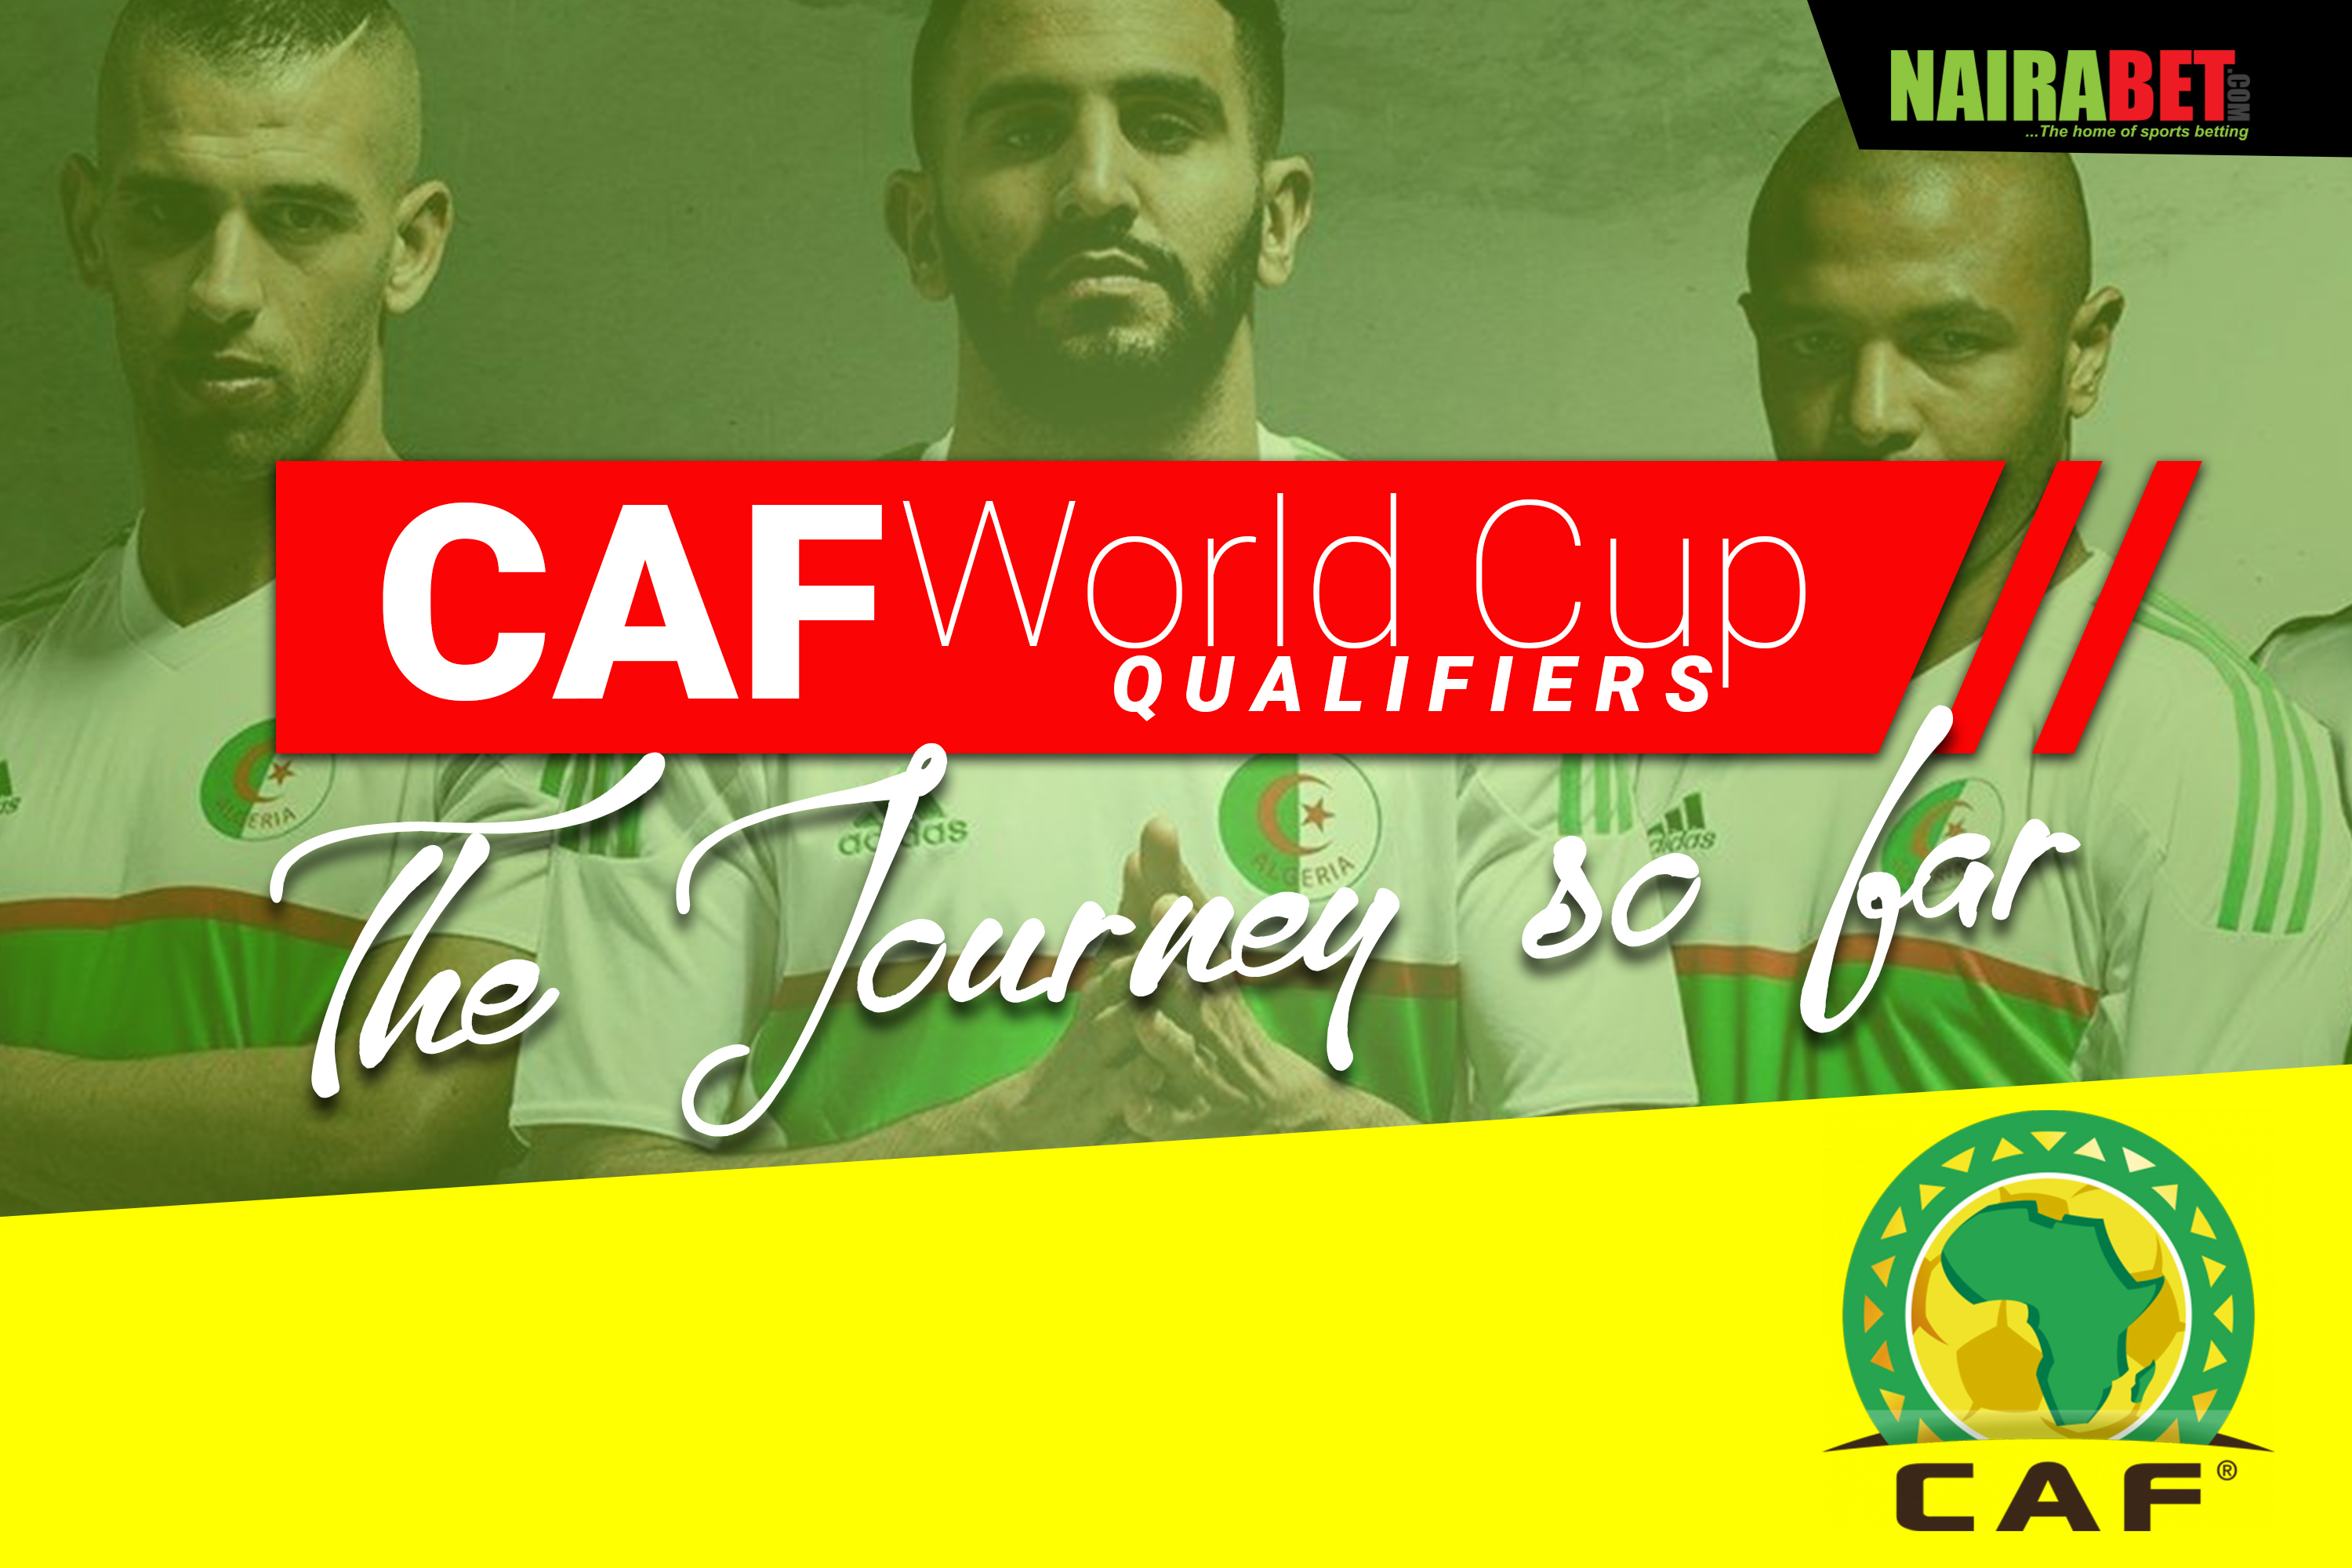 CAF World Cup Qualifier